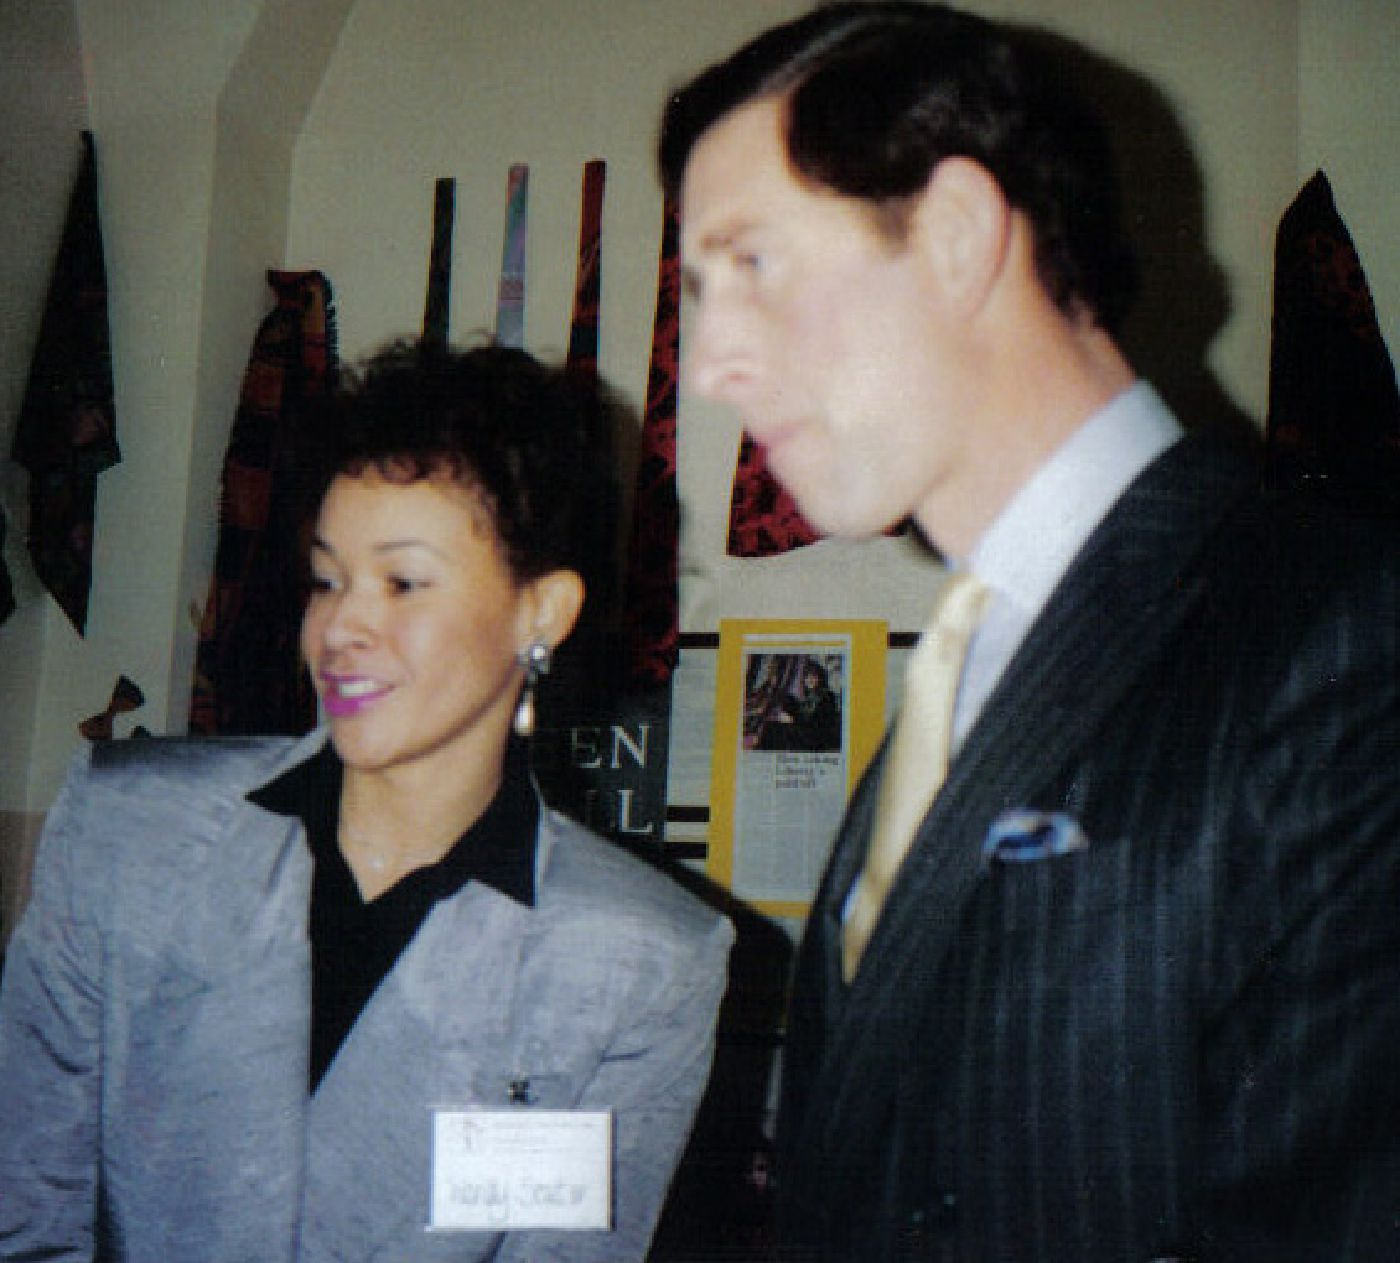 Wendy Souter with HRH Prince Charles at opening of OTC - UK in 1988